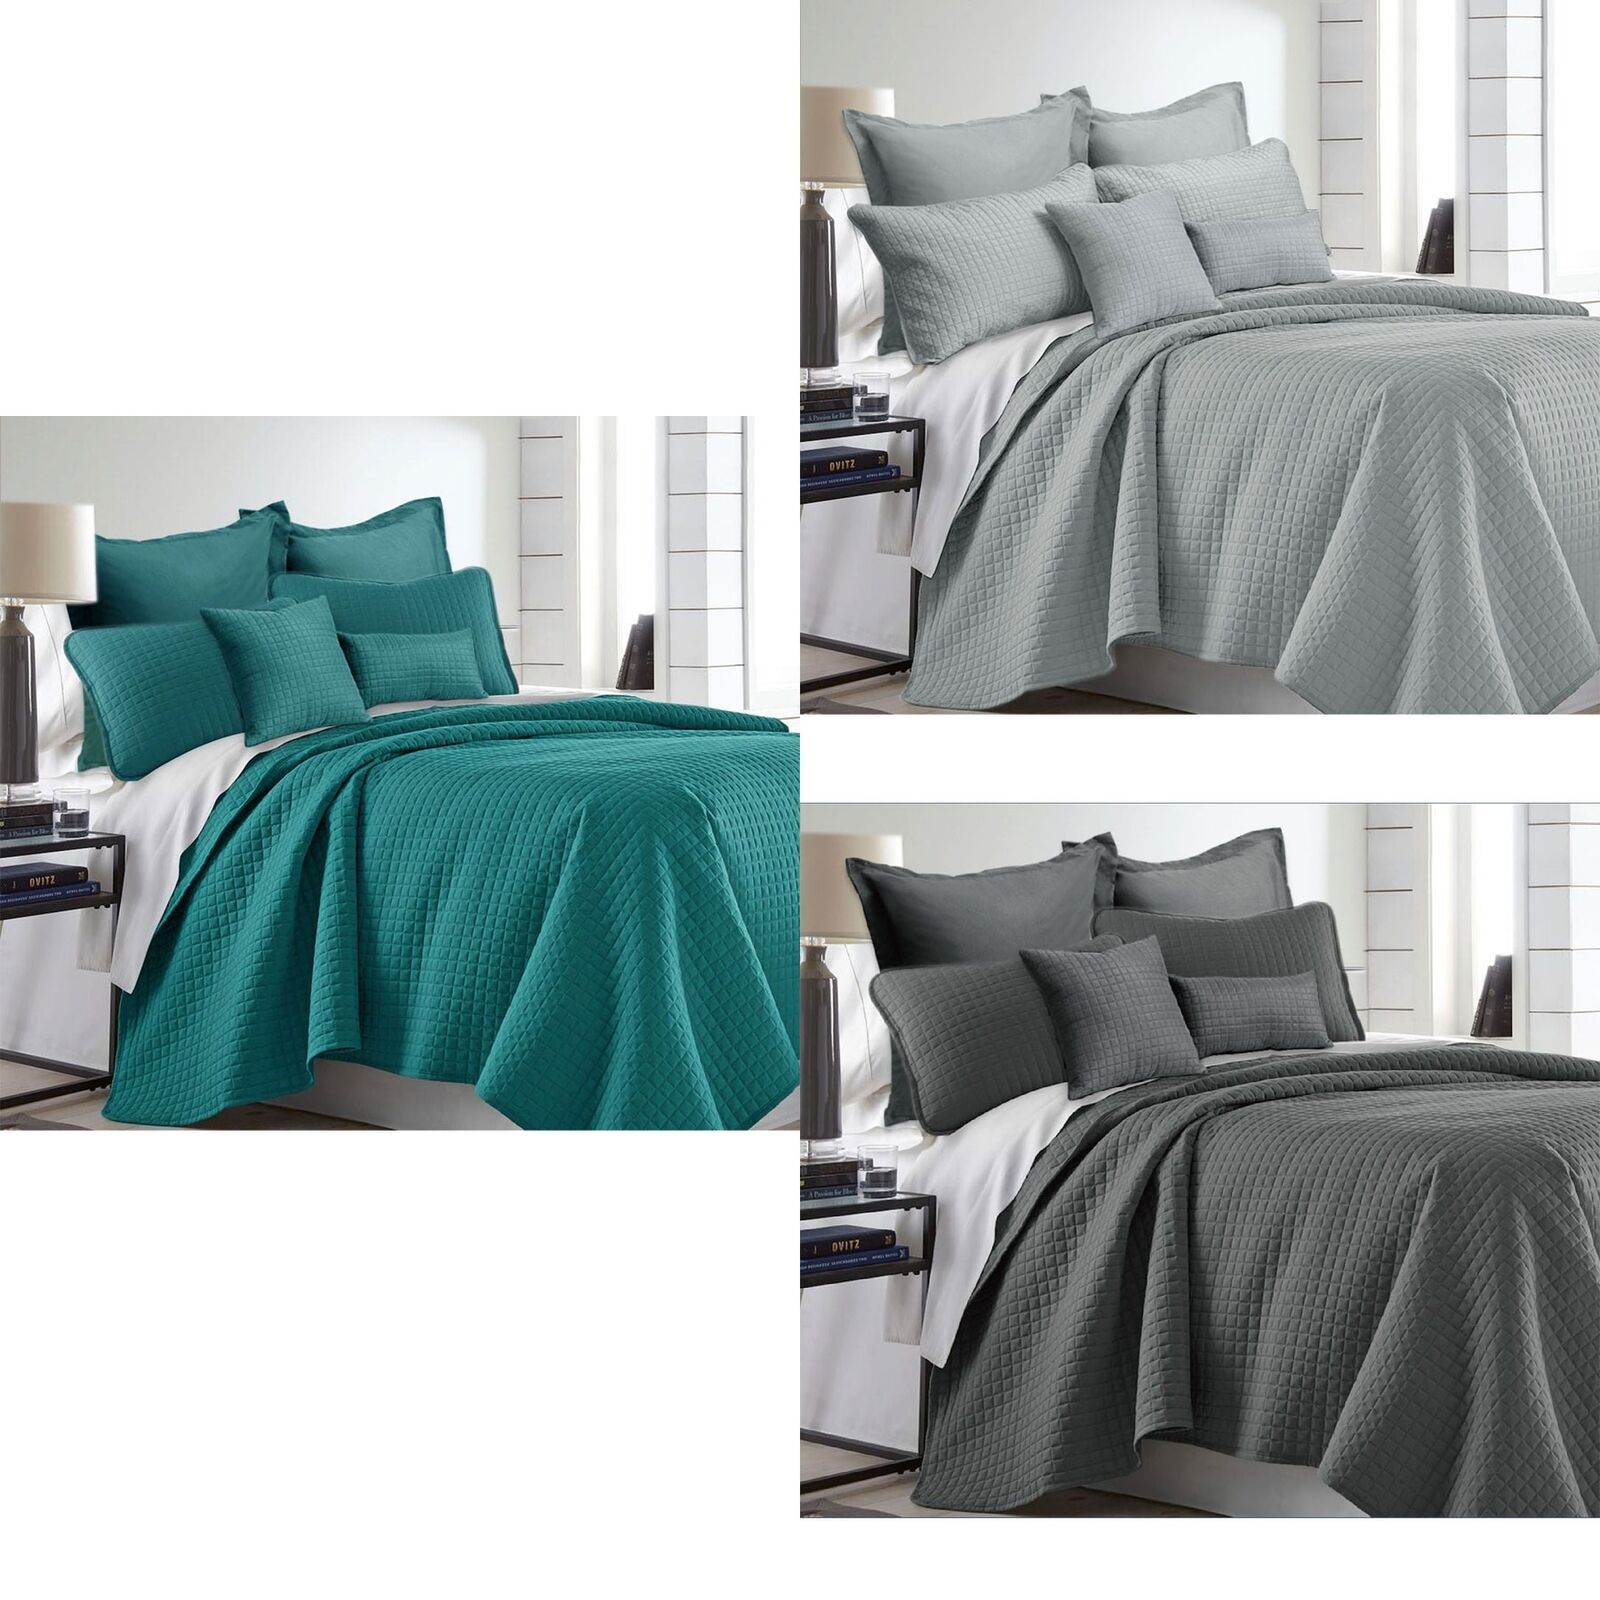 7 Piece Premium Hotel Collection Comforter Set by Ramesses - QUEEN KING